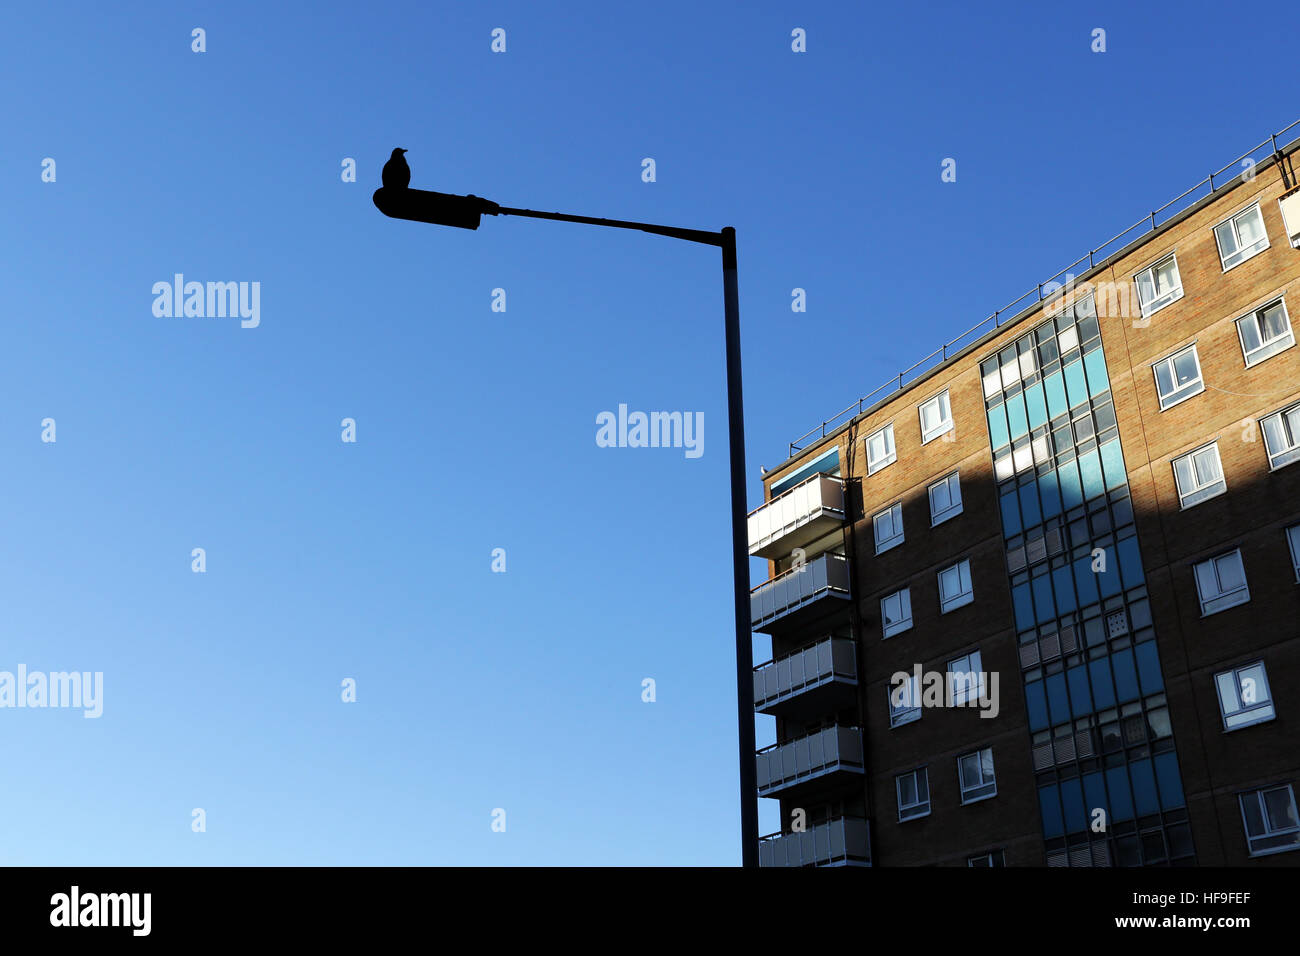 Seagull on lamp post - Stock Image